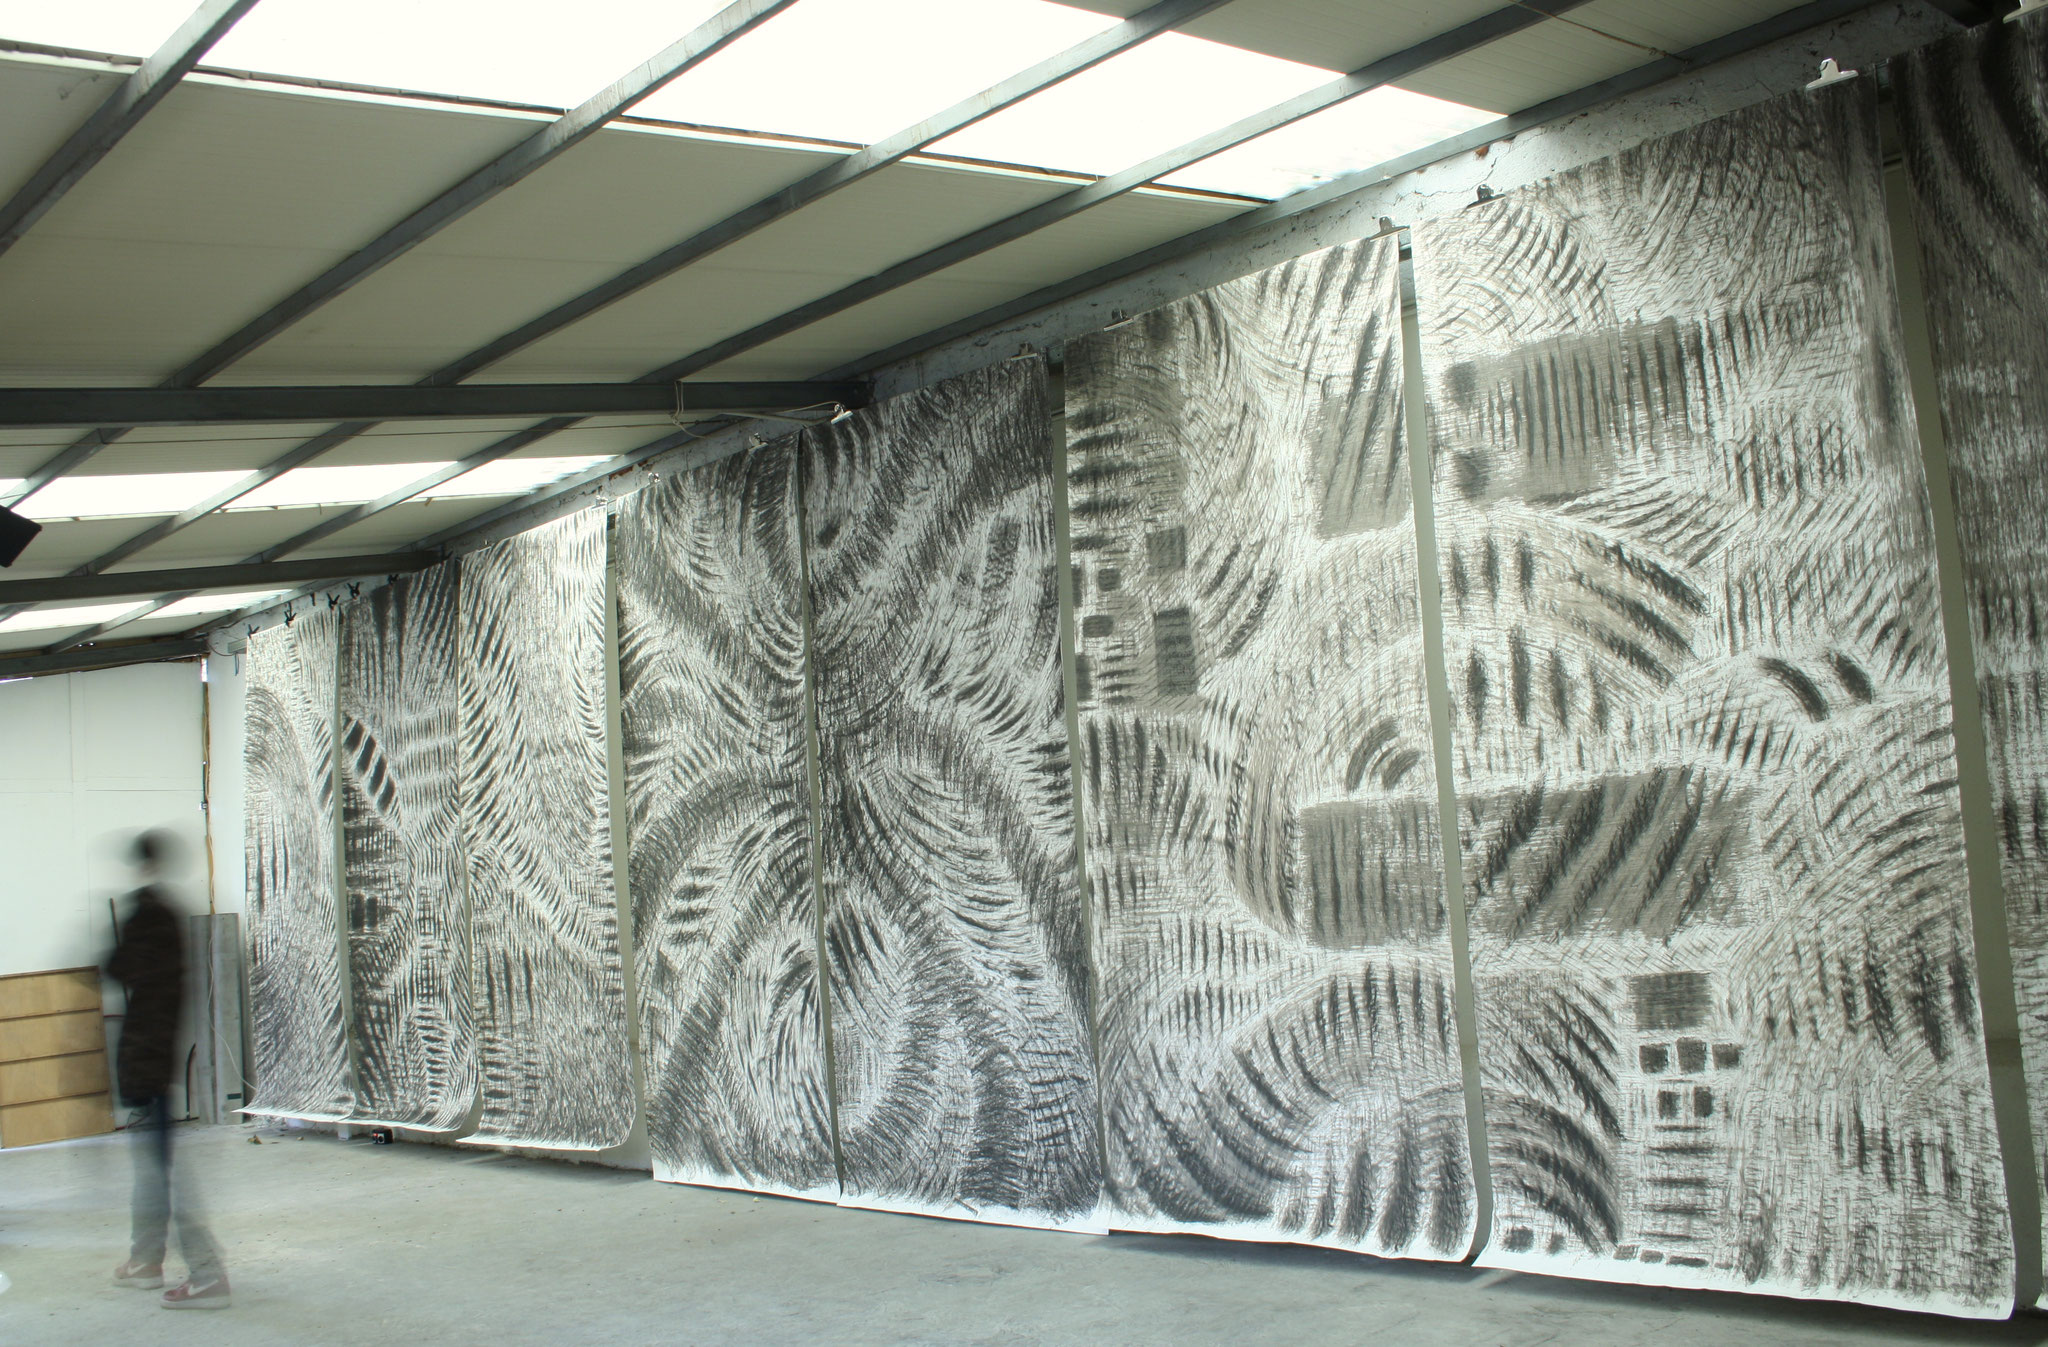 Monosema - 2017 - polyptych - ashes on paper, m 3,40 x 12  [each panel cm 340 x 150] view of provisional wall-installation at Muta